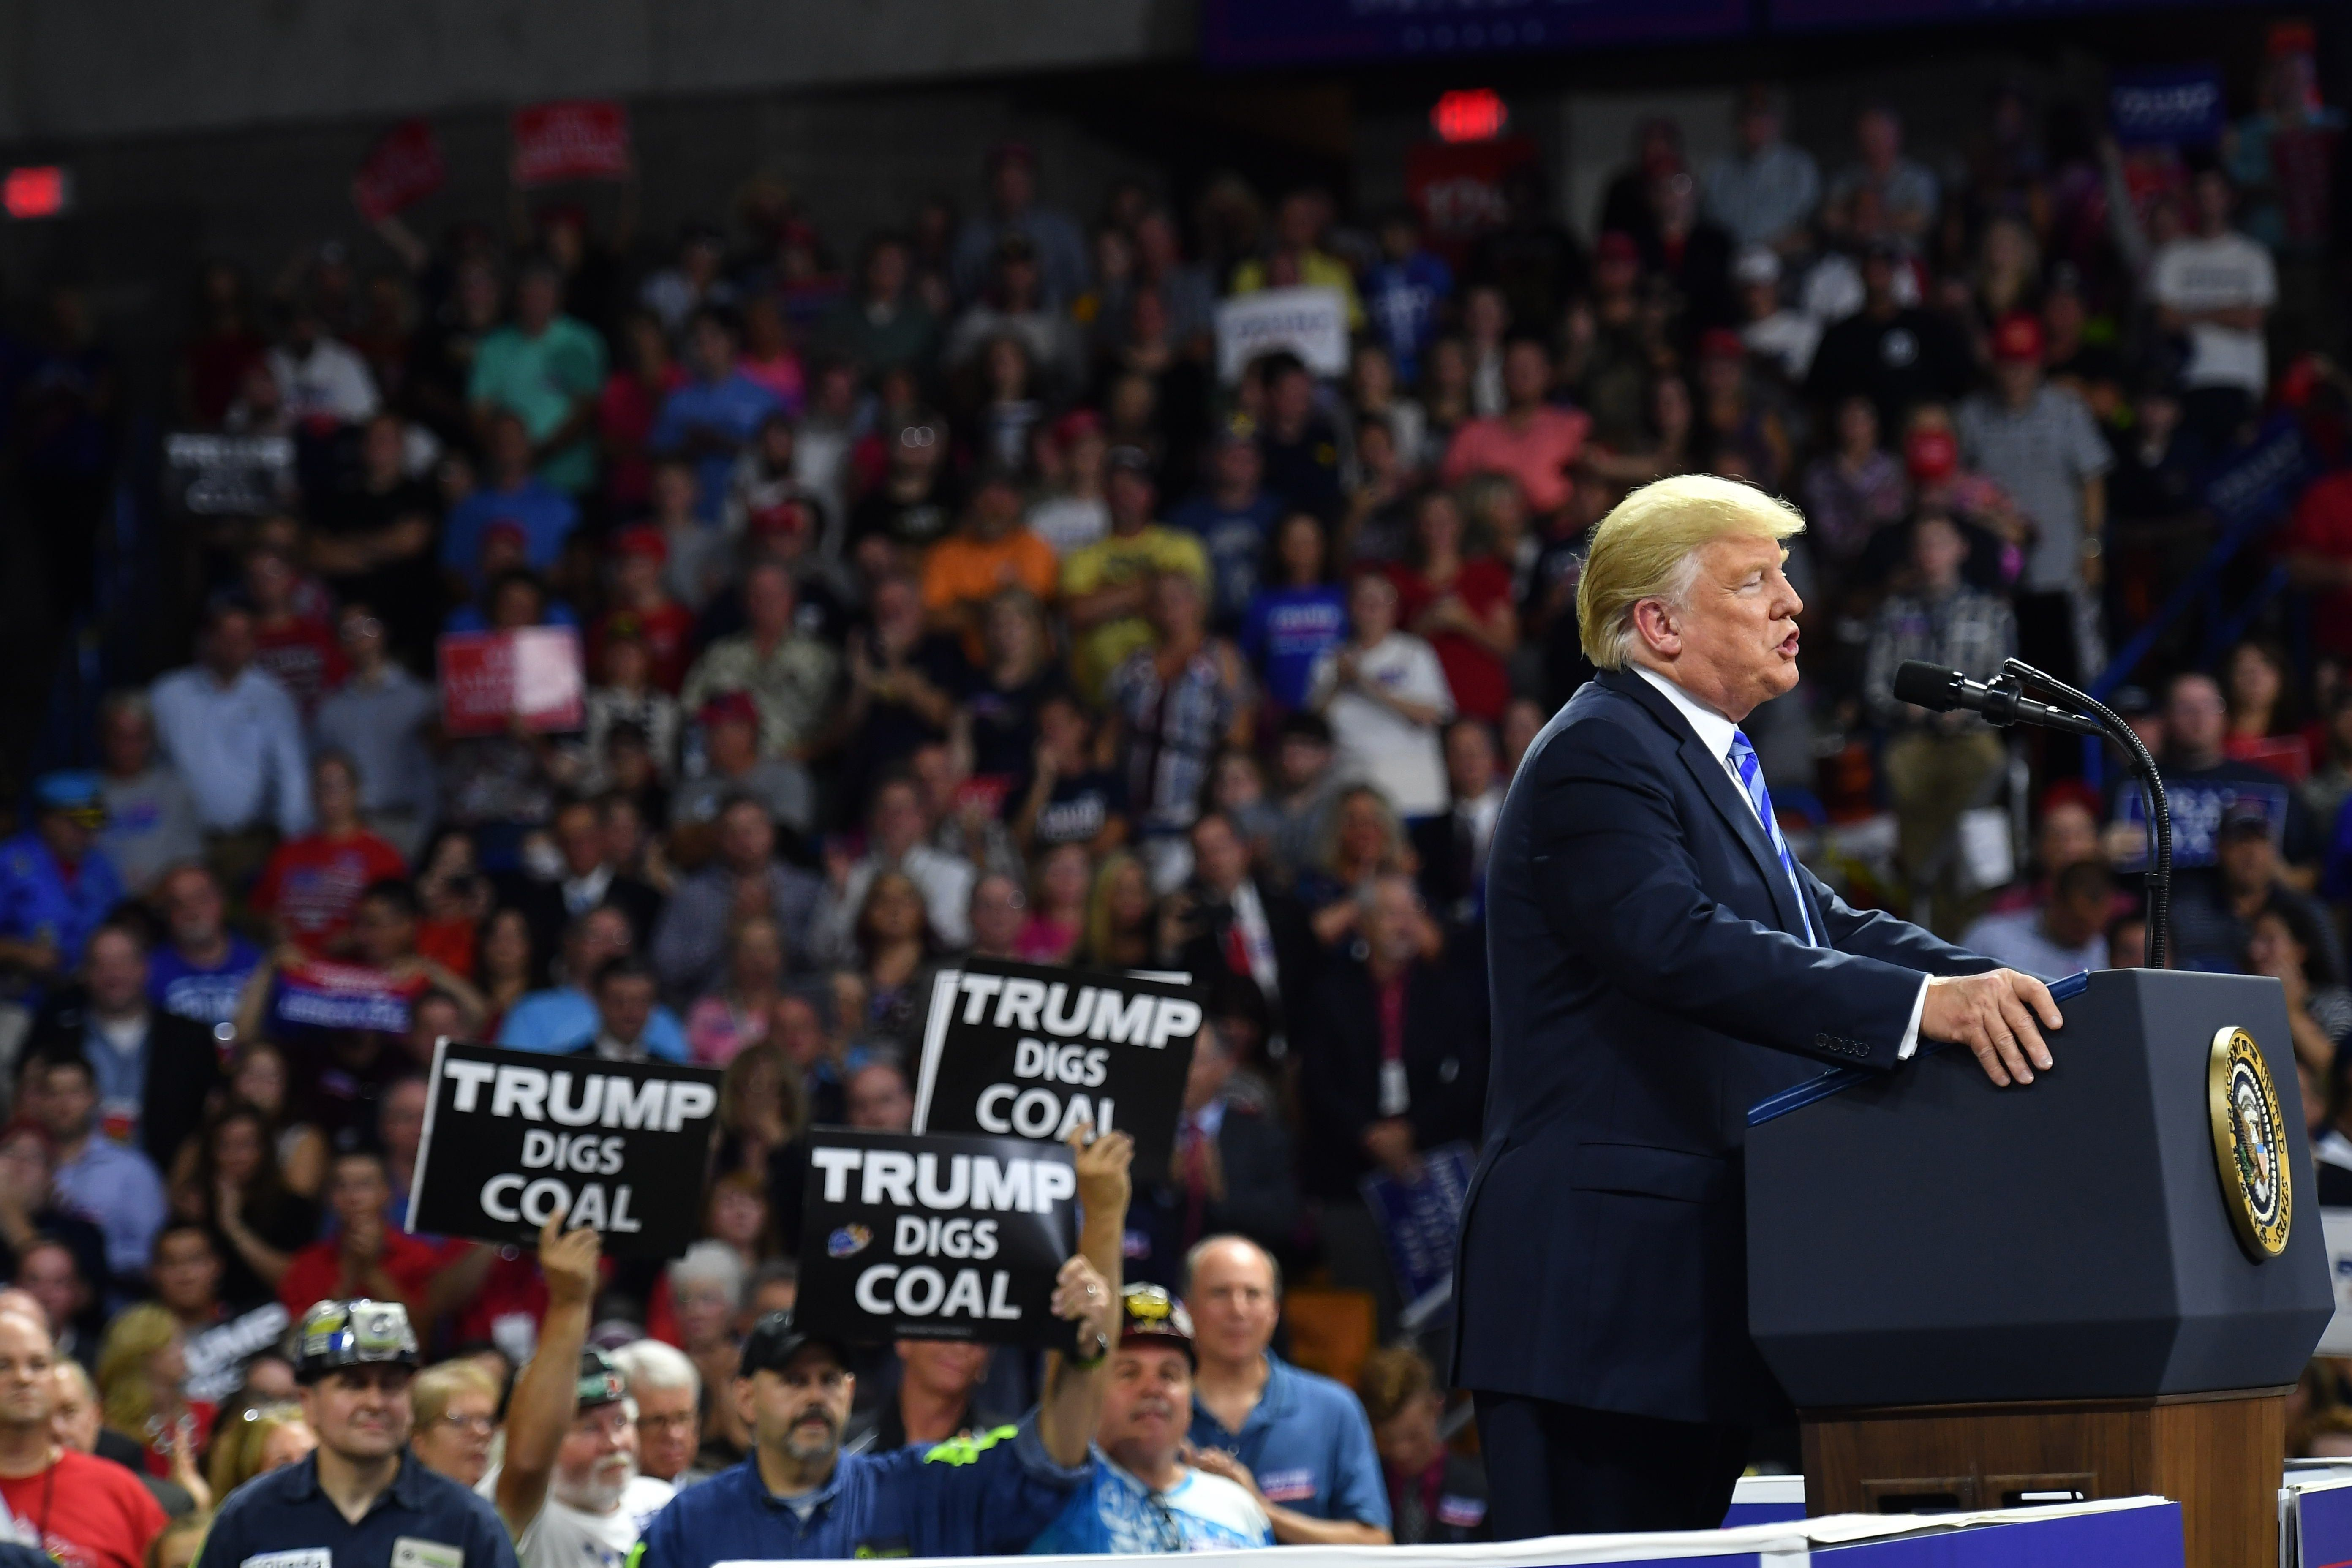 US President Donald Trump speaks during a political rally at Charleston Civic Center in Charleston, West Virginia on August 21, 2018. - Trump's administration announced a plan on August 21 to weaken regulations on US coal plants, giving a boost to an industry that former leader Barack Obama had hoped to wind down in order to cut harmful emissions that drive global warming. (Photo by MANDEL NGAN / AFP)        (Photo credit should read MANDEL NGAN/AFP/Getty Images)